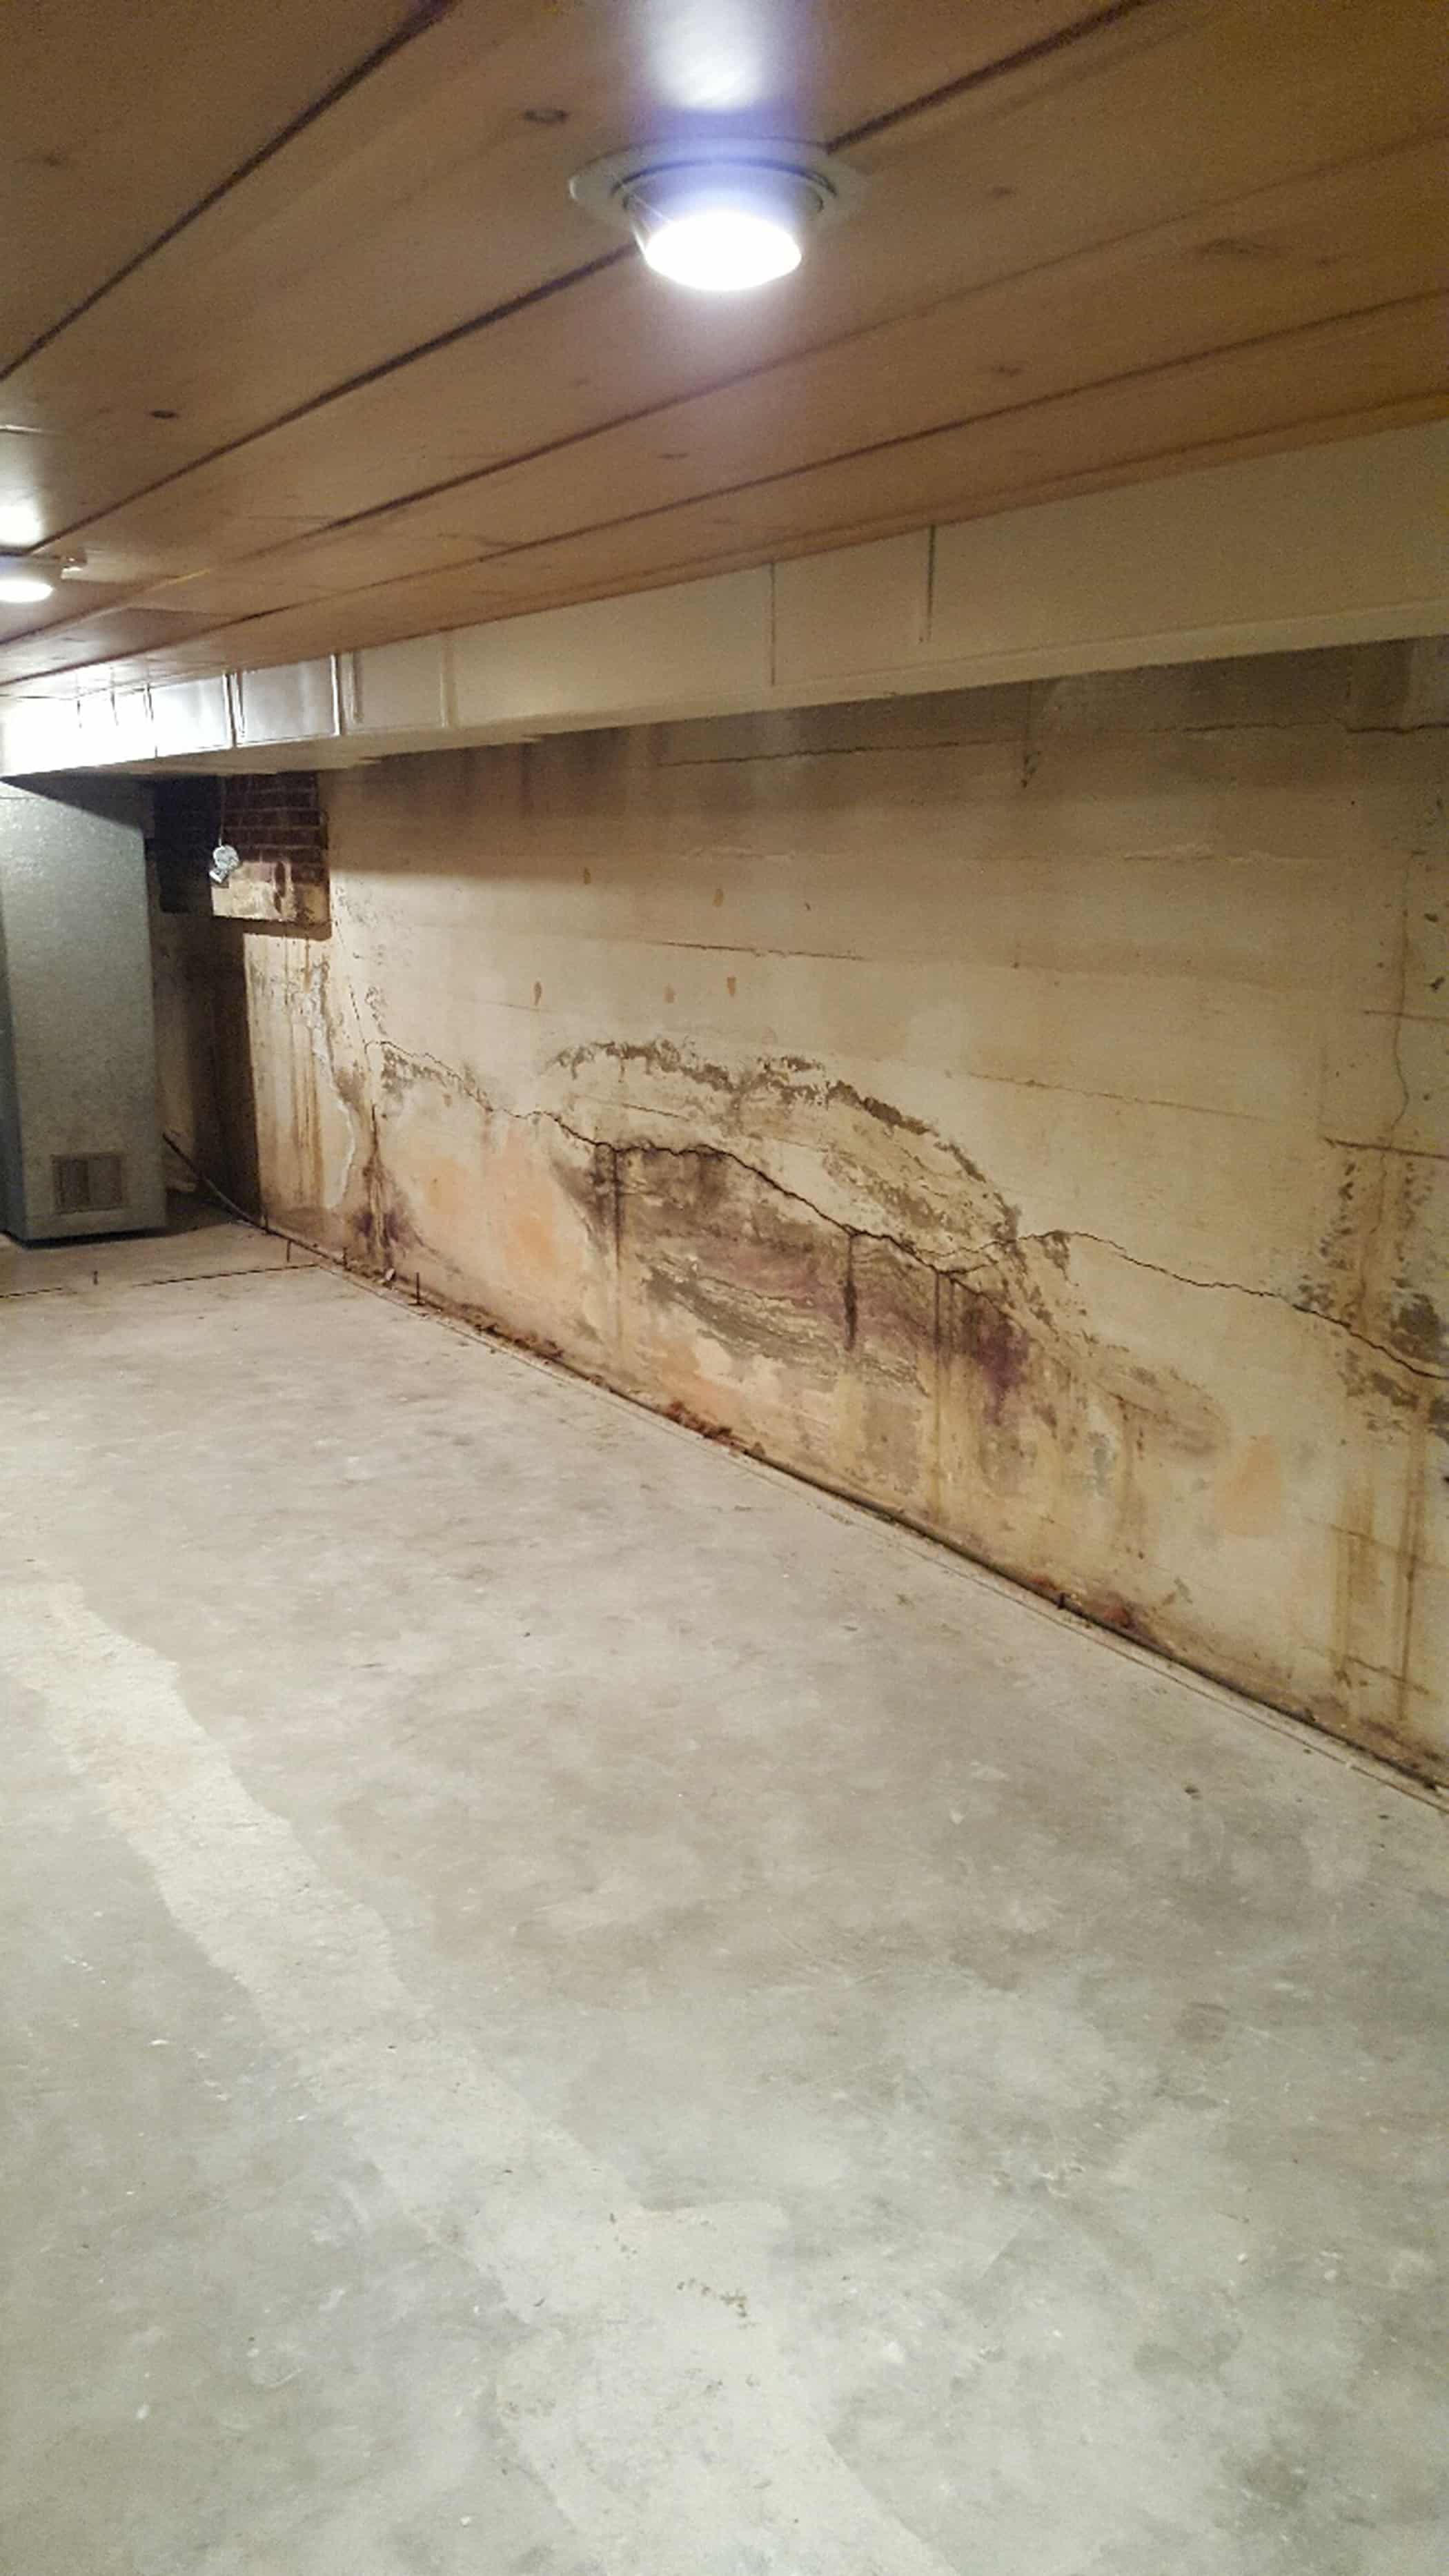 Basement Waterproofing In St Charles. Location: St Charles, MO